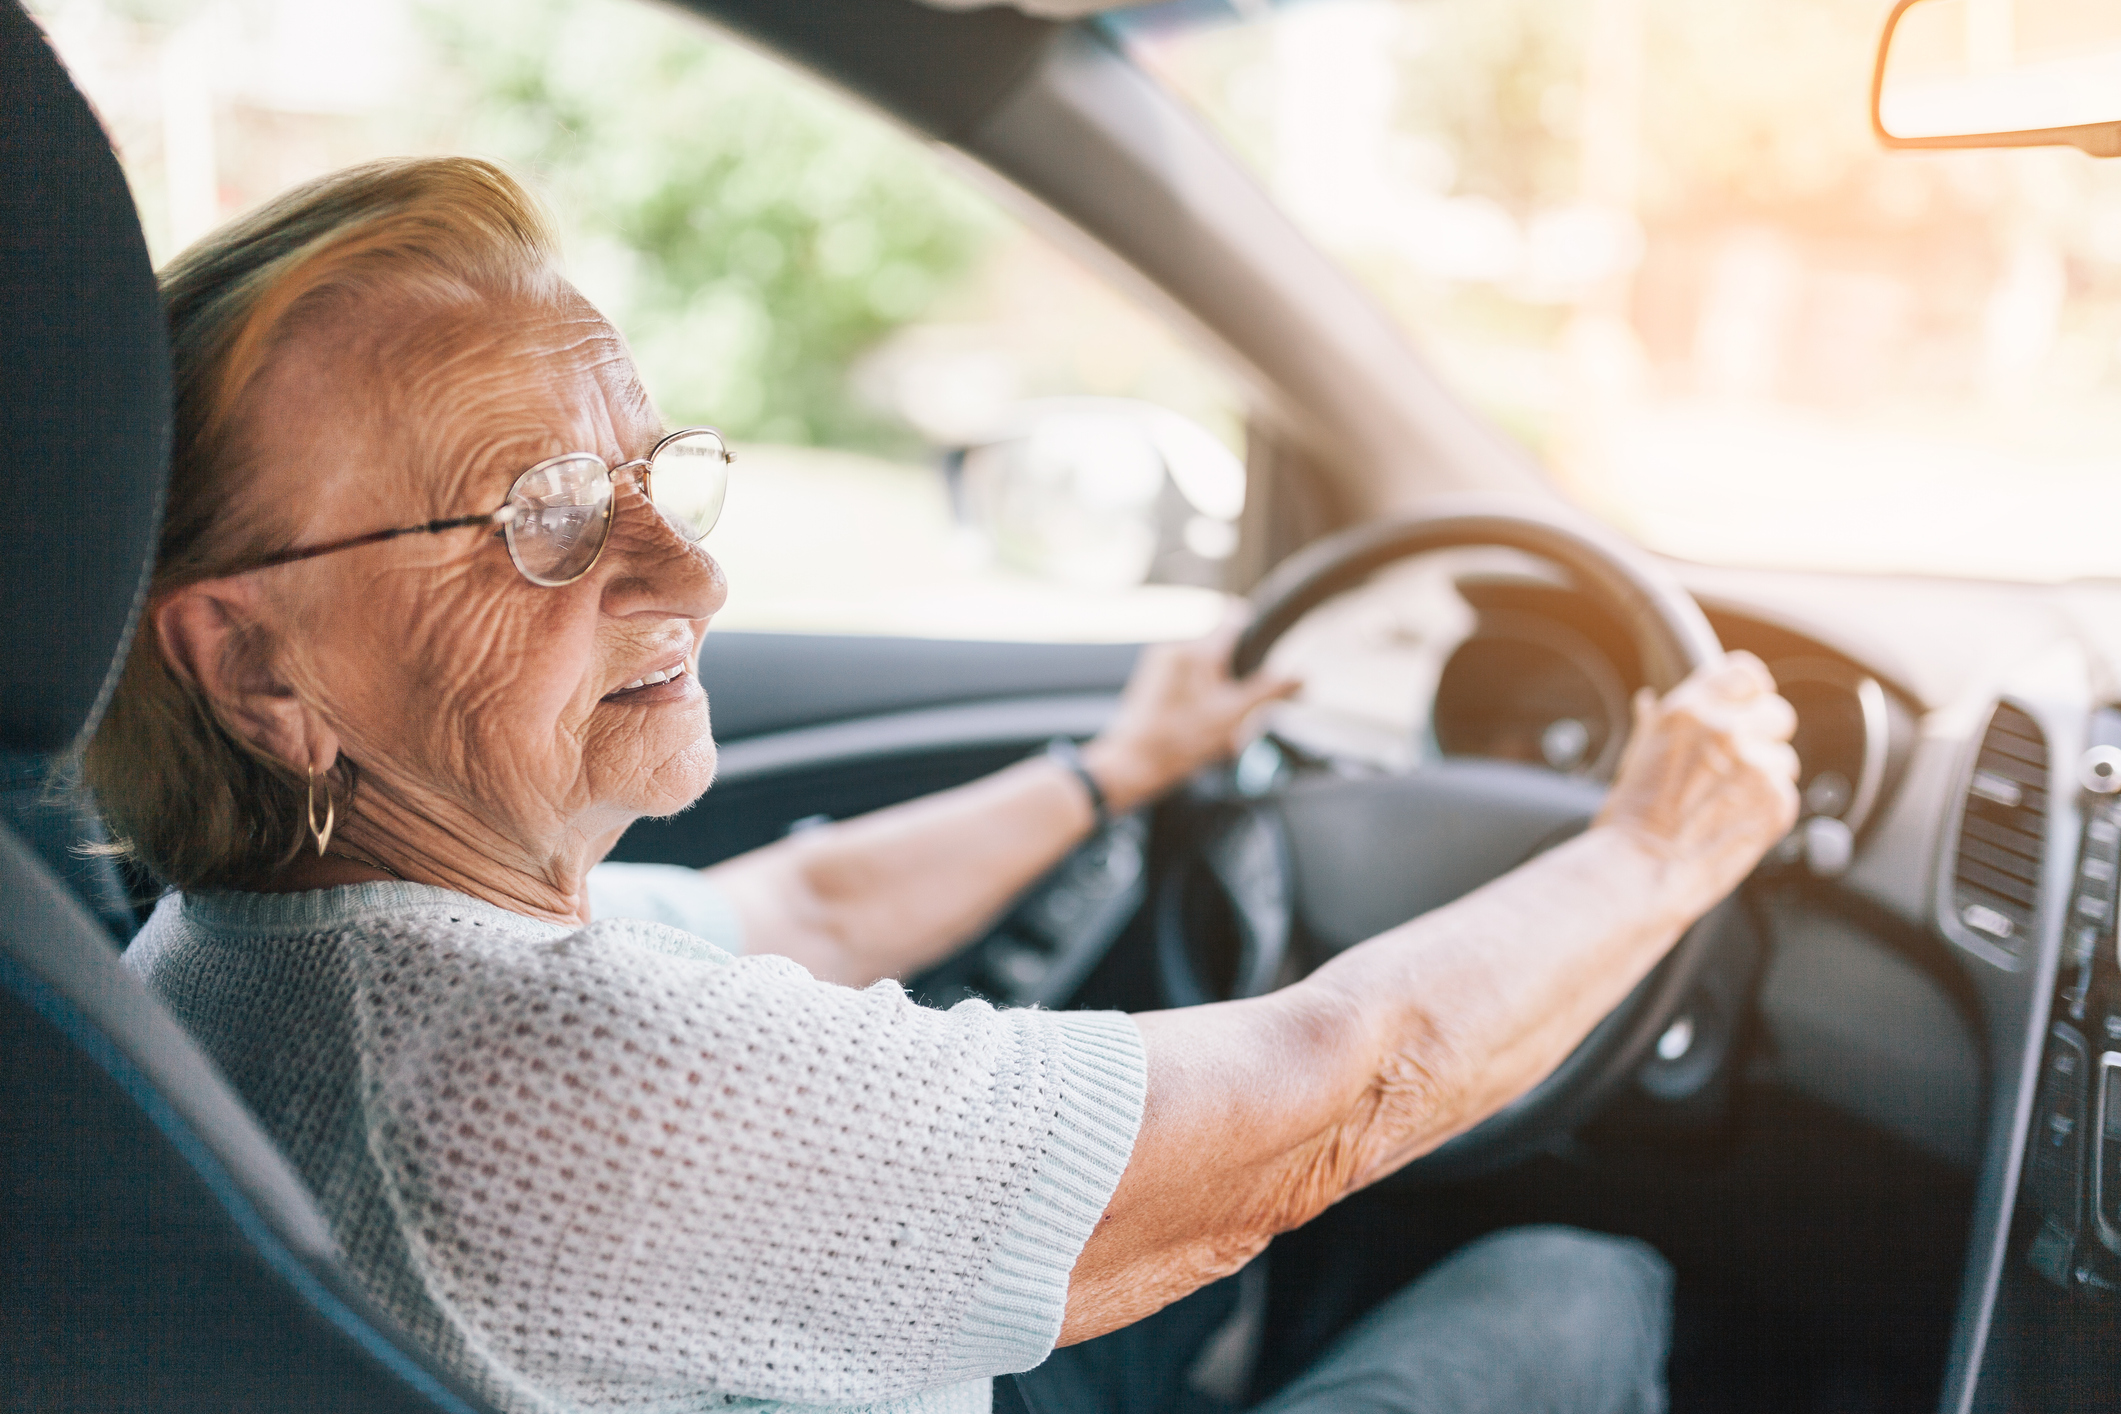 Elderly woman behind the steering wheel of a car. iStock.